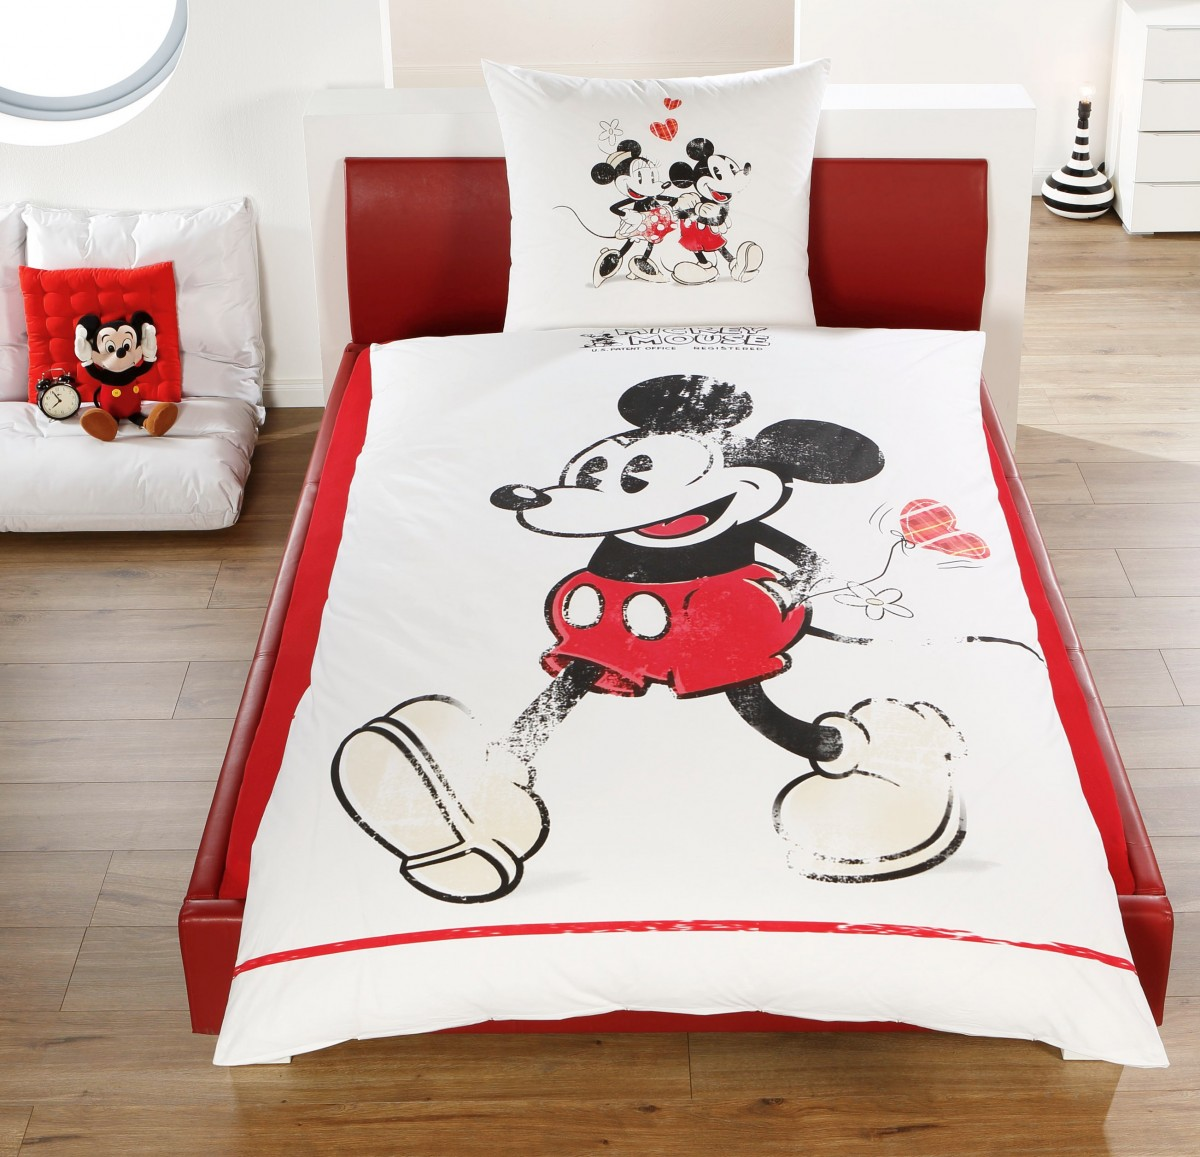 disney linon renforc wende bettw sche mickey minnie. Black Bedroom Furniture Sets. Home Design Ideas